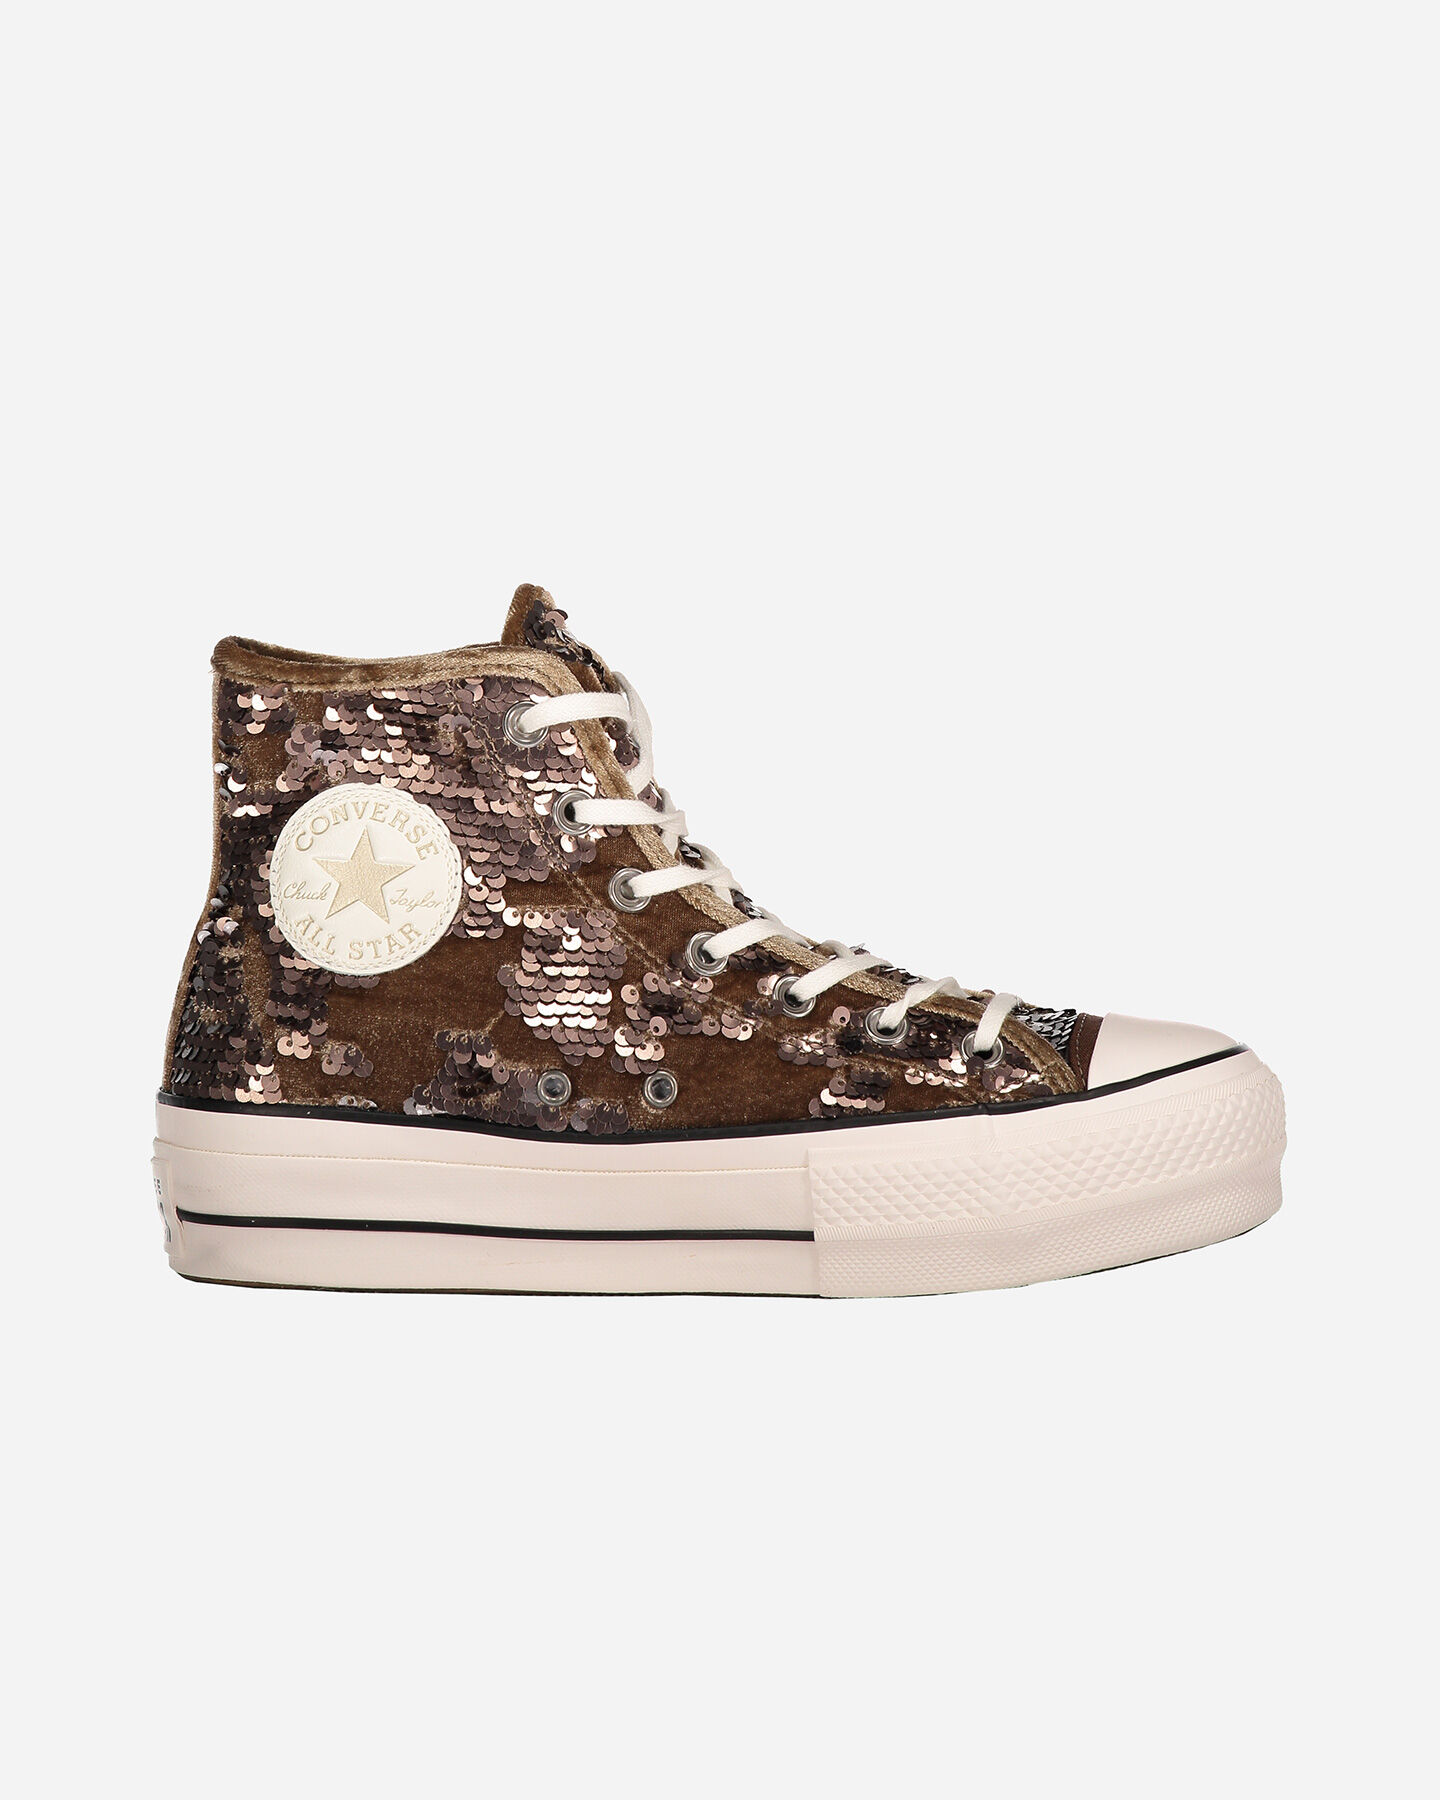 Paillettes W 562777c Sneakers Converse All Star Scarpe Hi Platform f76gIbvYy